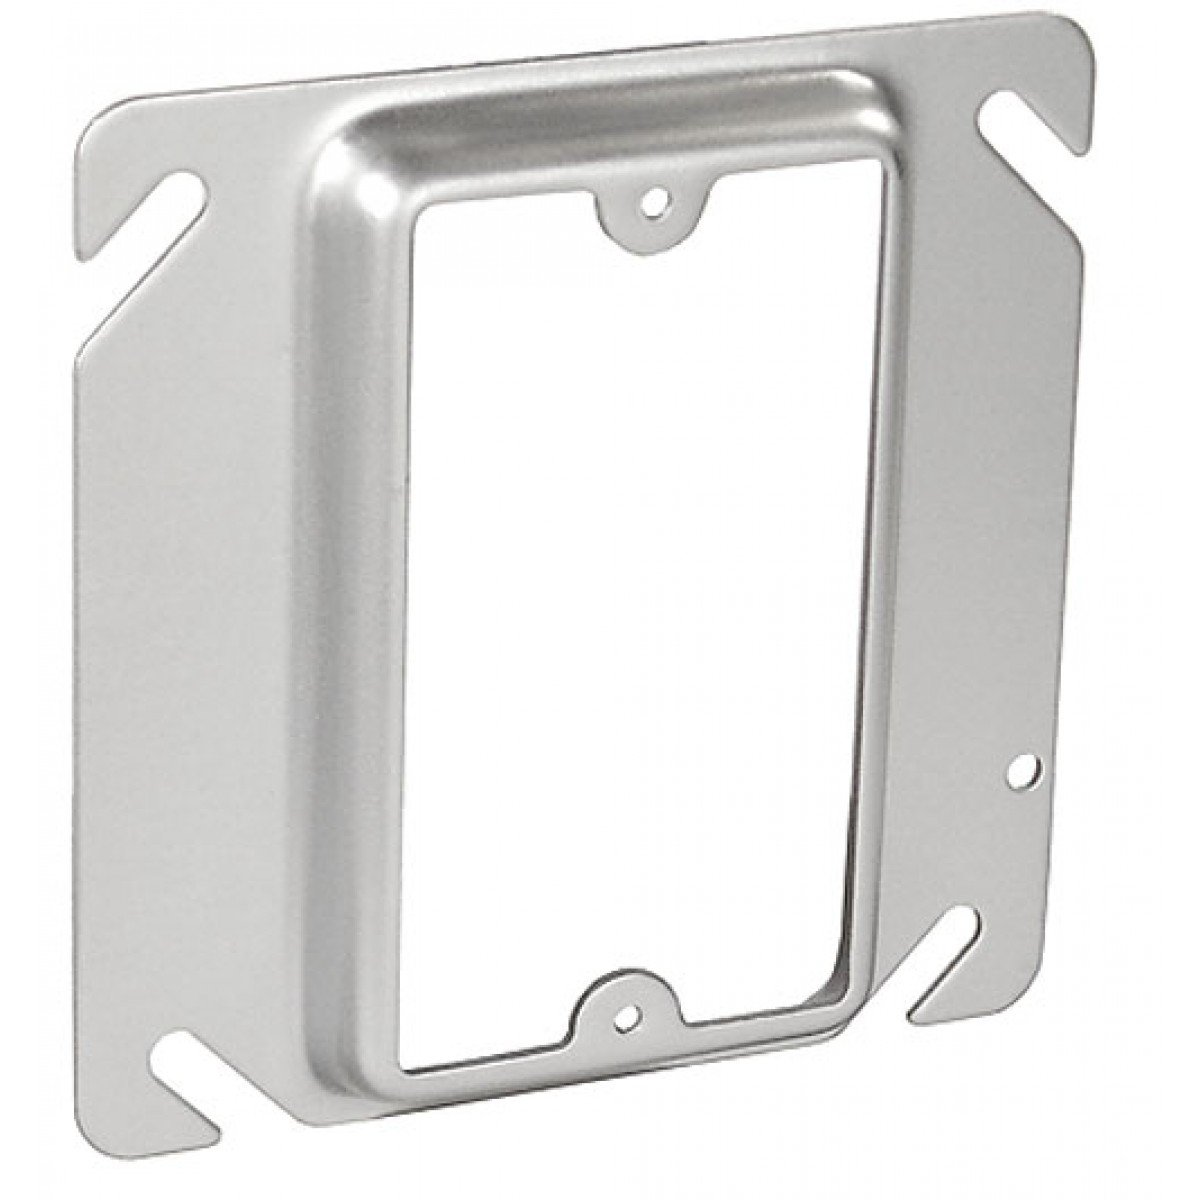 10 Pcs, Steel 4 Square Device Ring, One Gang, 1/2 In. Raised to Move Switch, Outlet Or Plug to One Side Of Box Away From Obstacles Present On Job, Or For Easier Wiring Access